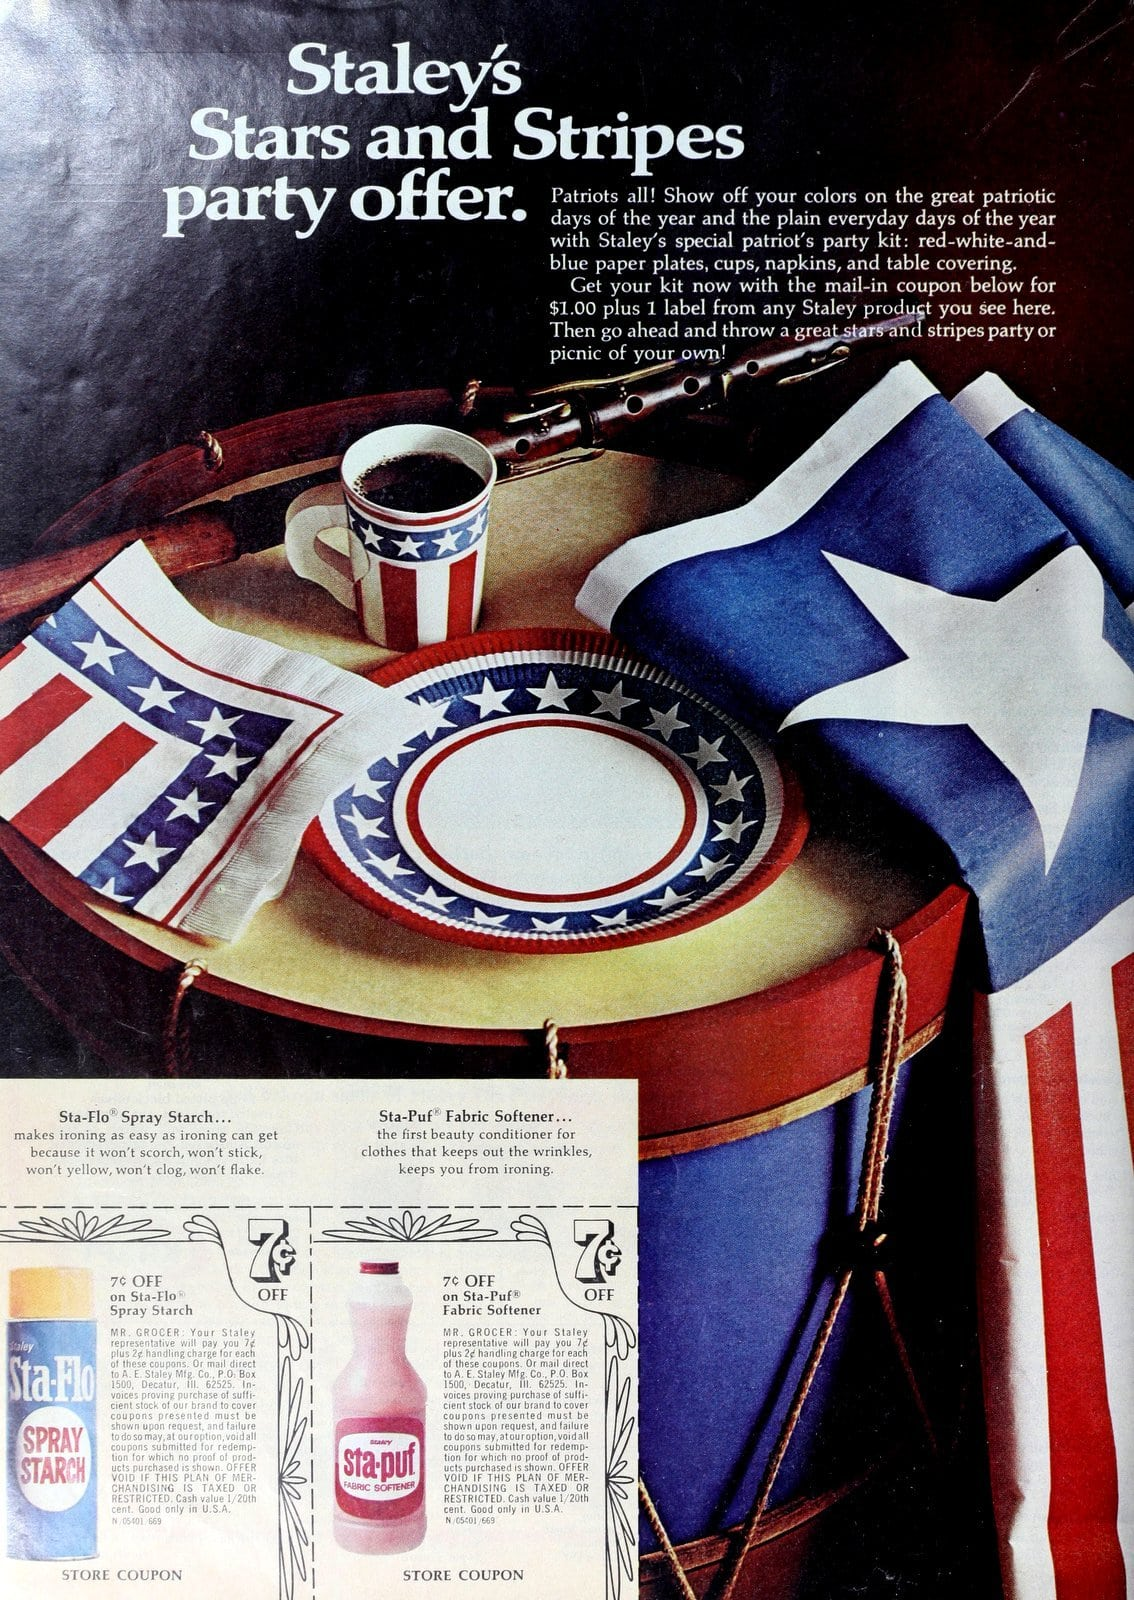 Staley stars and stripes party offer (1969)